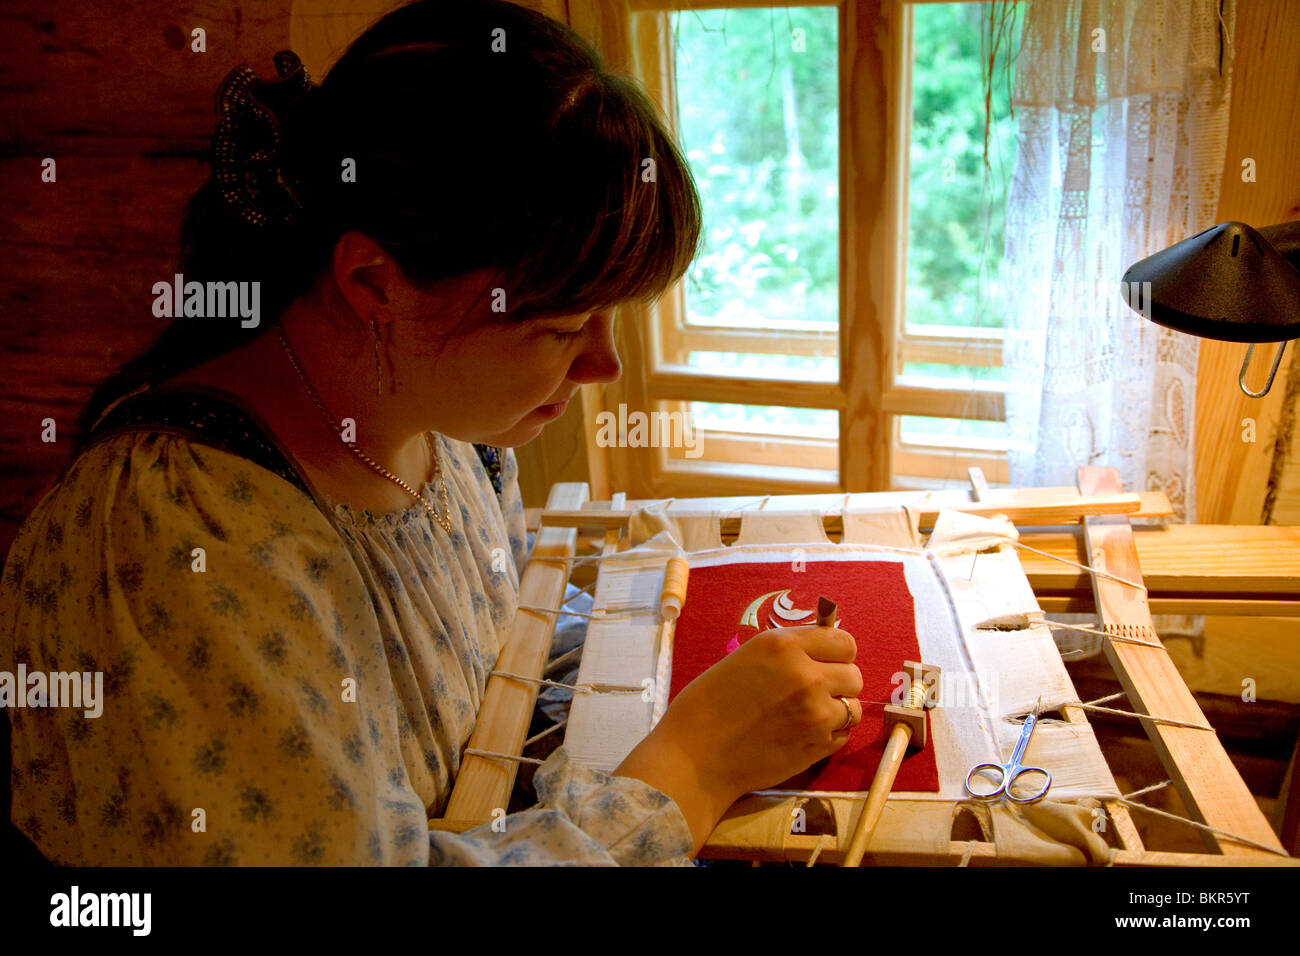 Russia, Leningrad Region, Podporozhsky - In Mandrogi, a crafts village on the Svir river - Stock Image